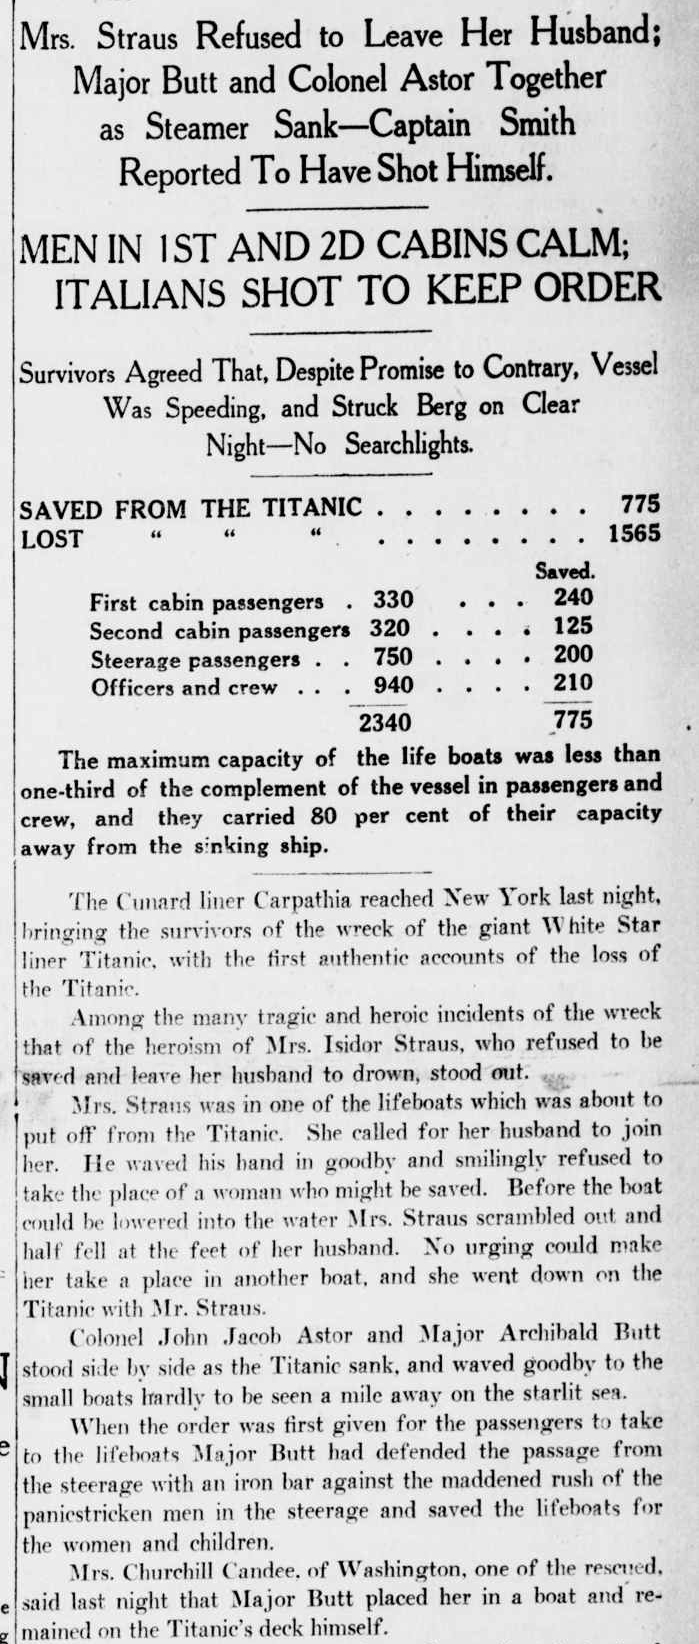 Titanic Newspaper Article 1912-04-19 New-York Tribune, April 19, 1912, Page 1